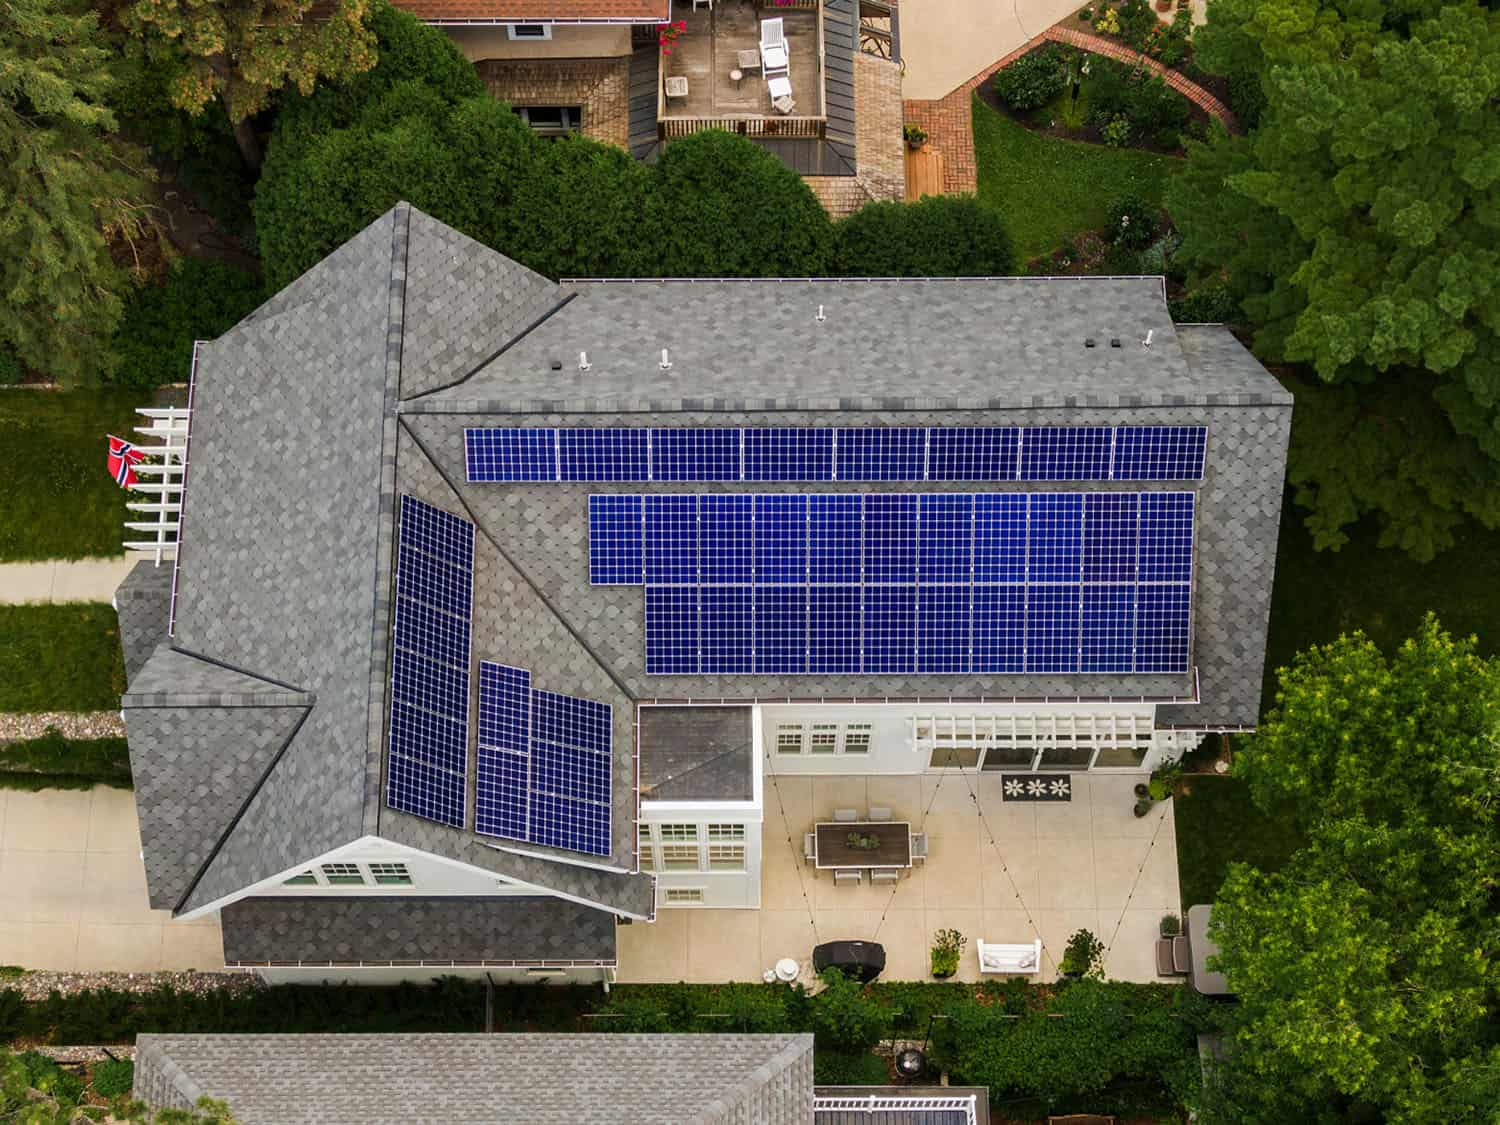 hygge-house-roof-view-solar-panels